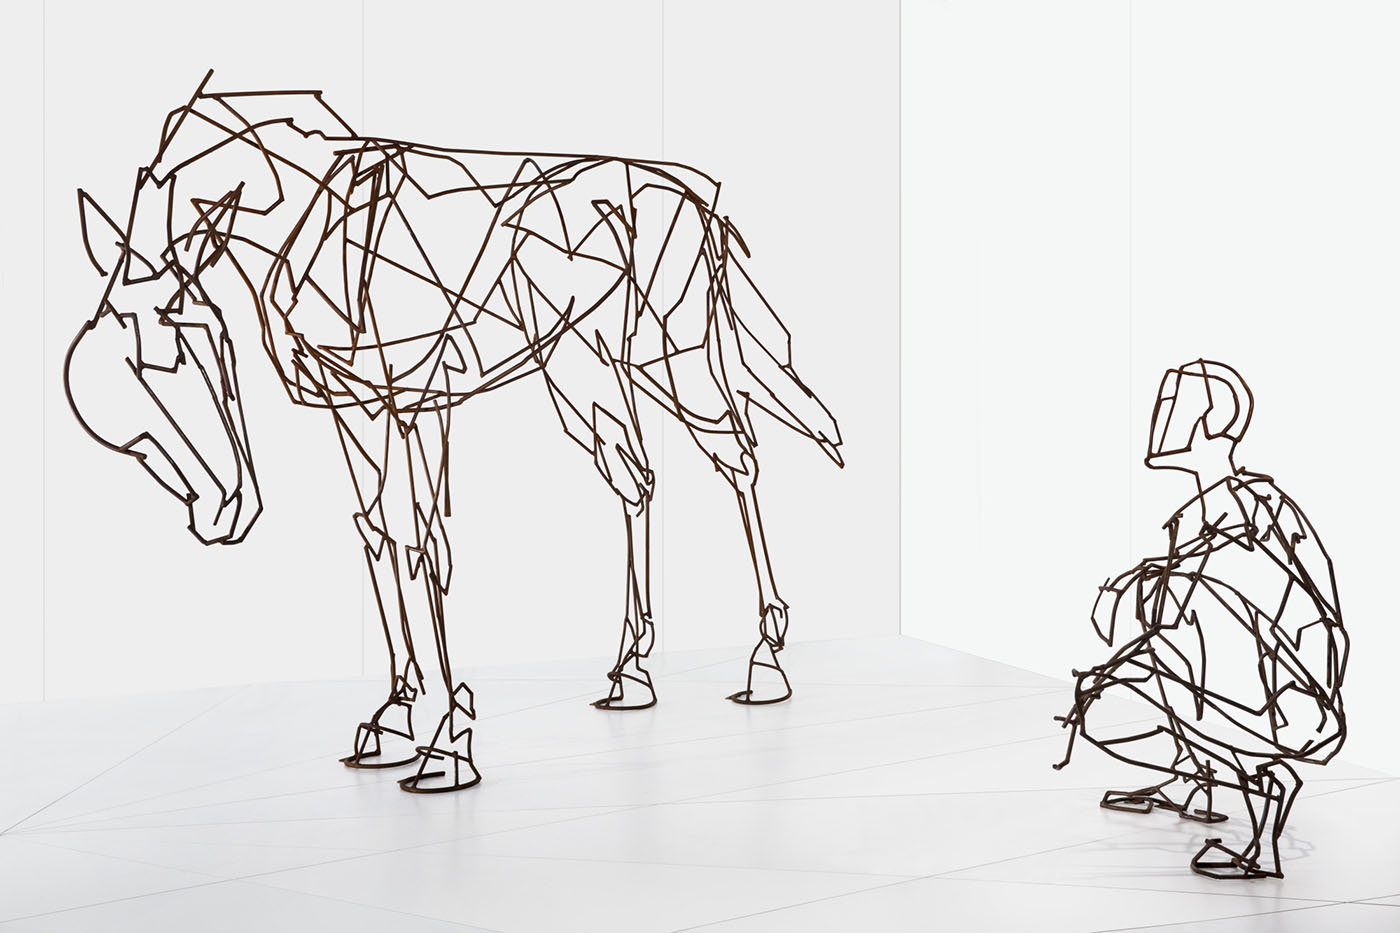 Metal sculpture showing a person squatting away and to the side of the form of a horse.